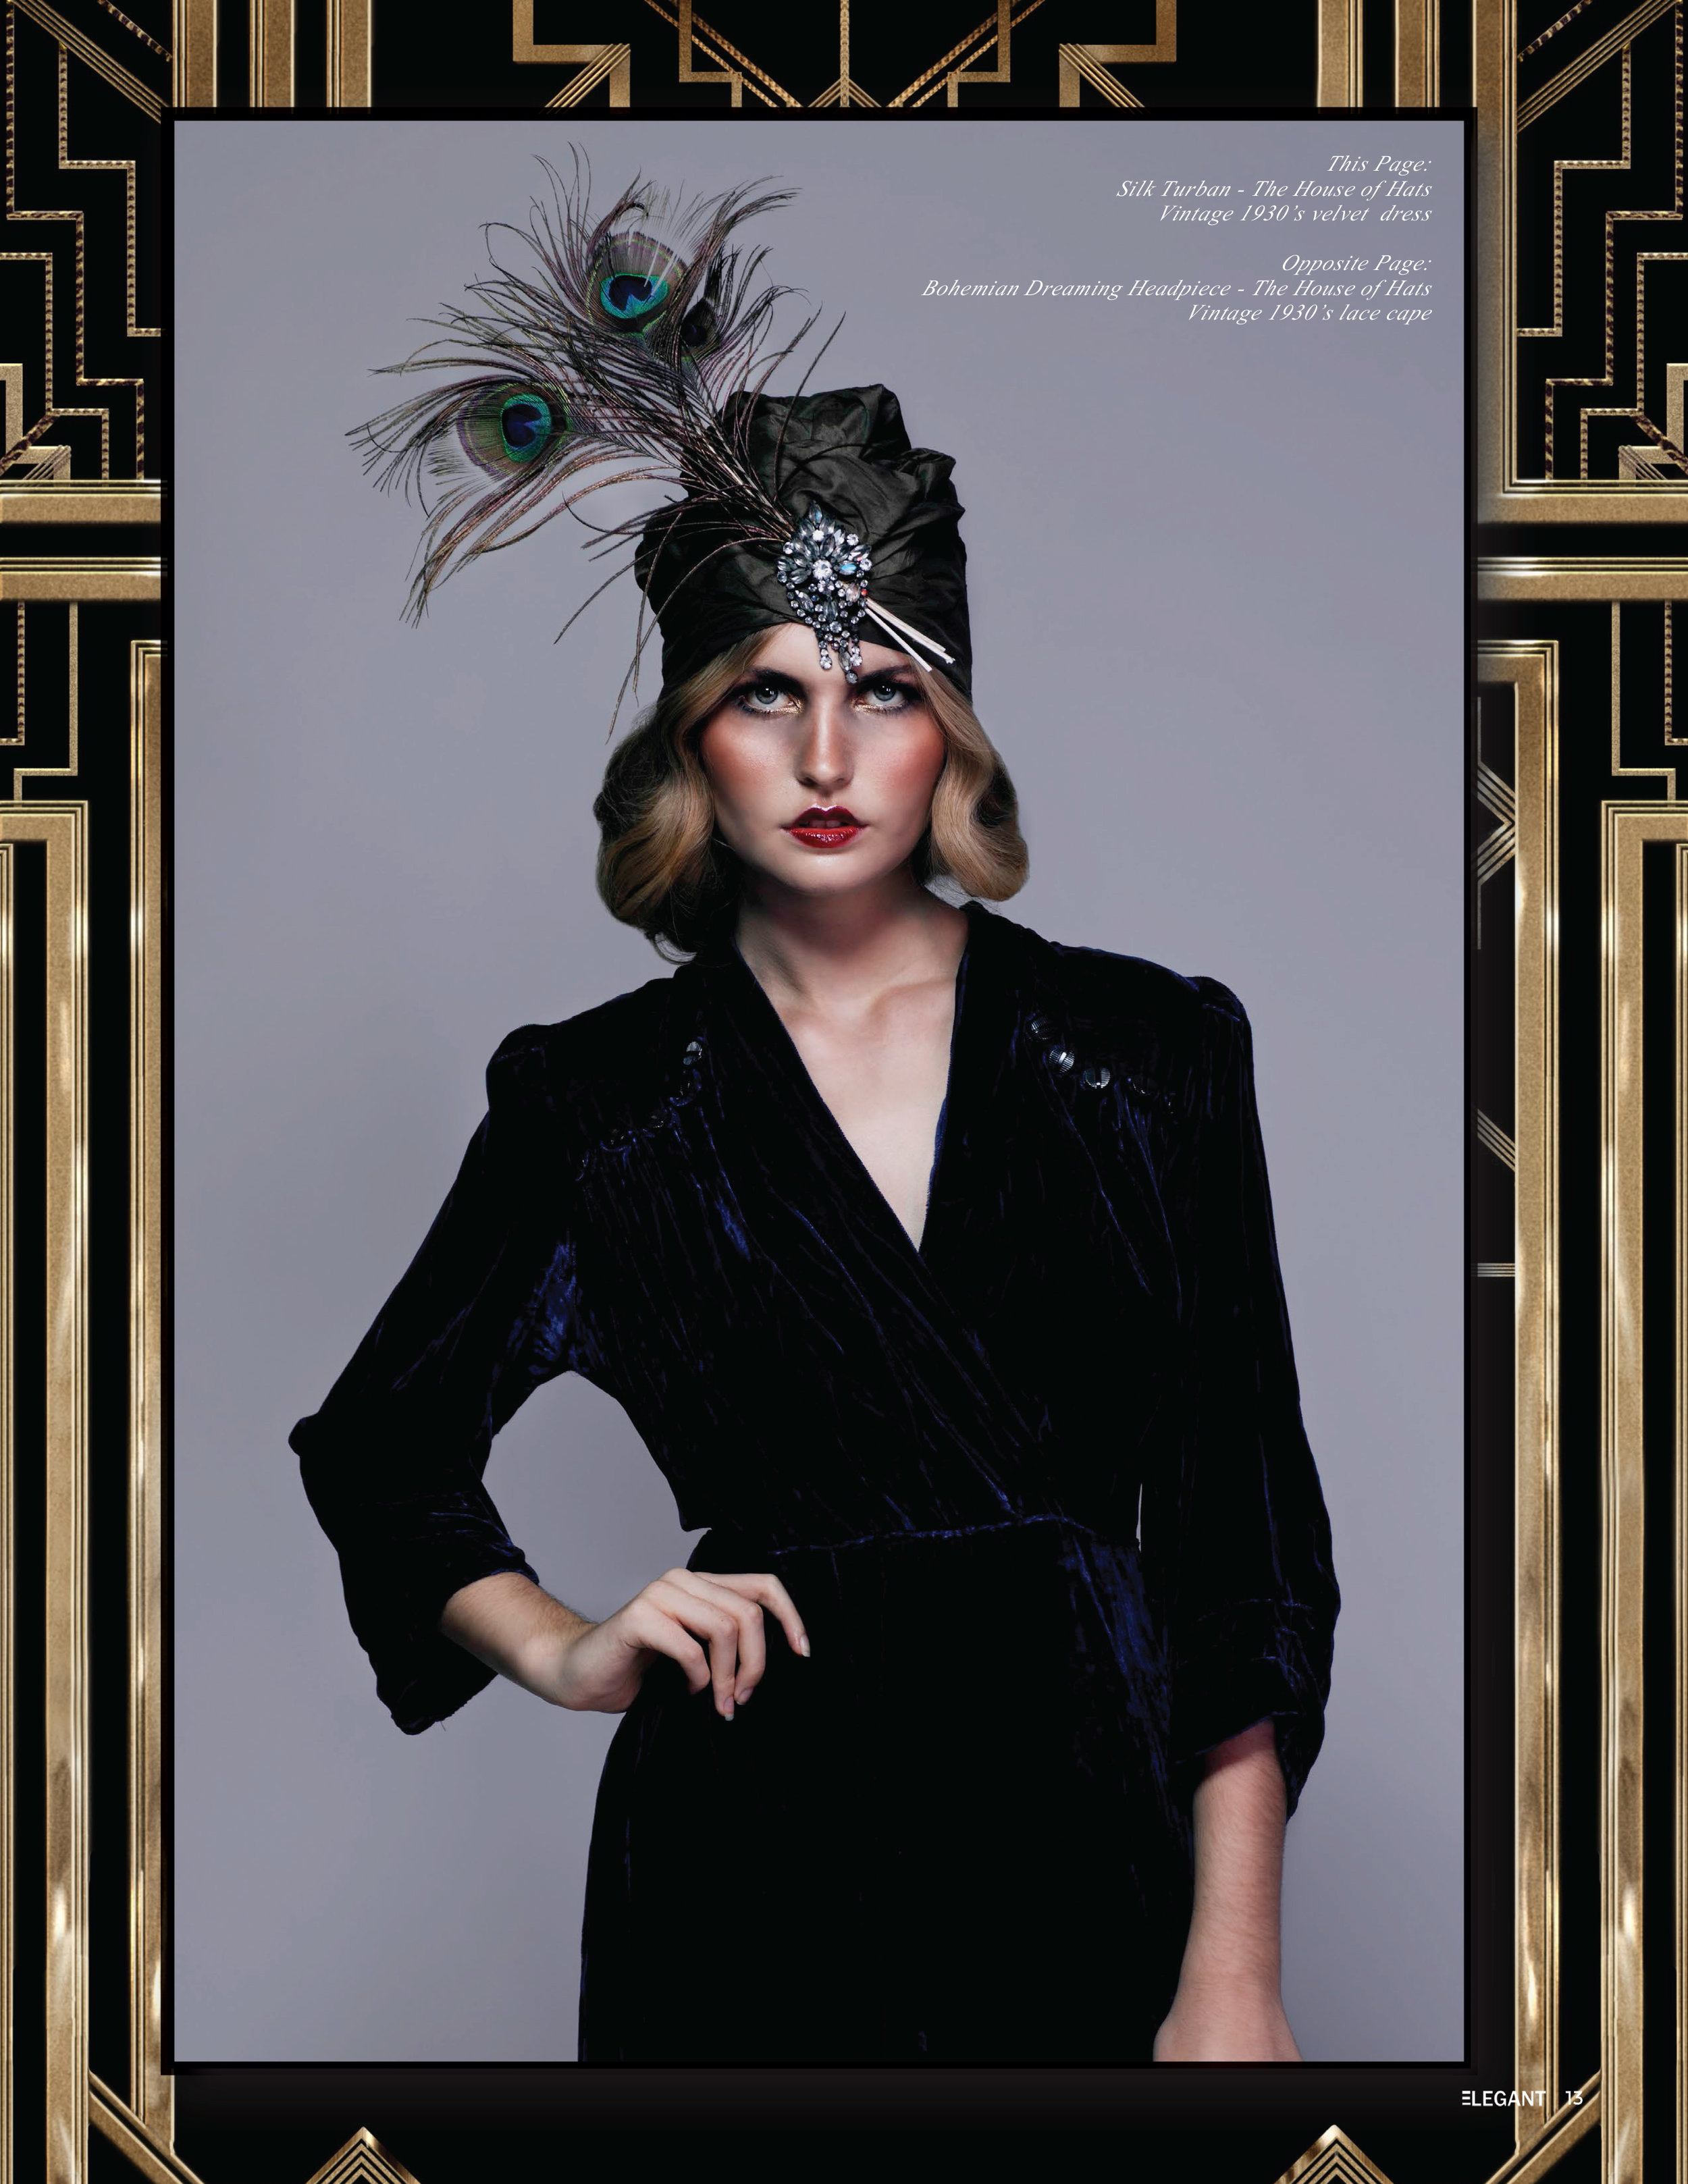 The House Of Hats Fortune teller Silk Turban as featured in Elegant Magazine .